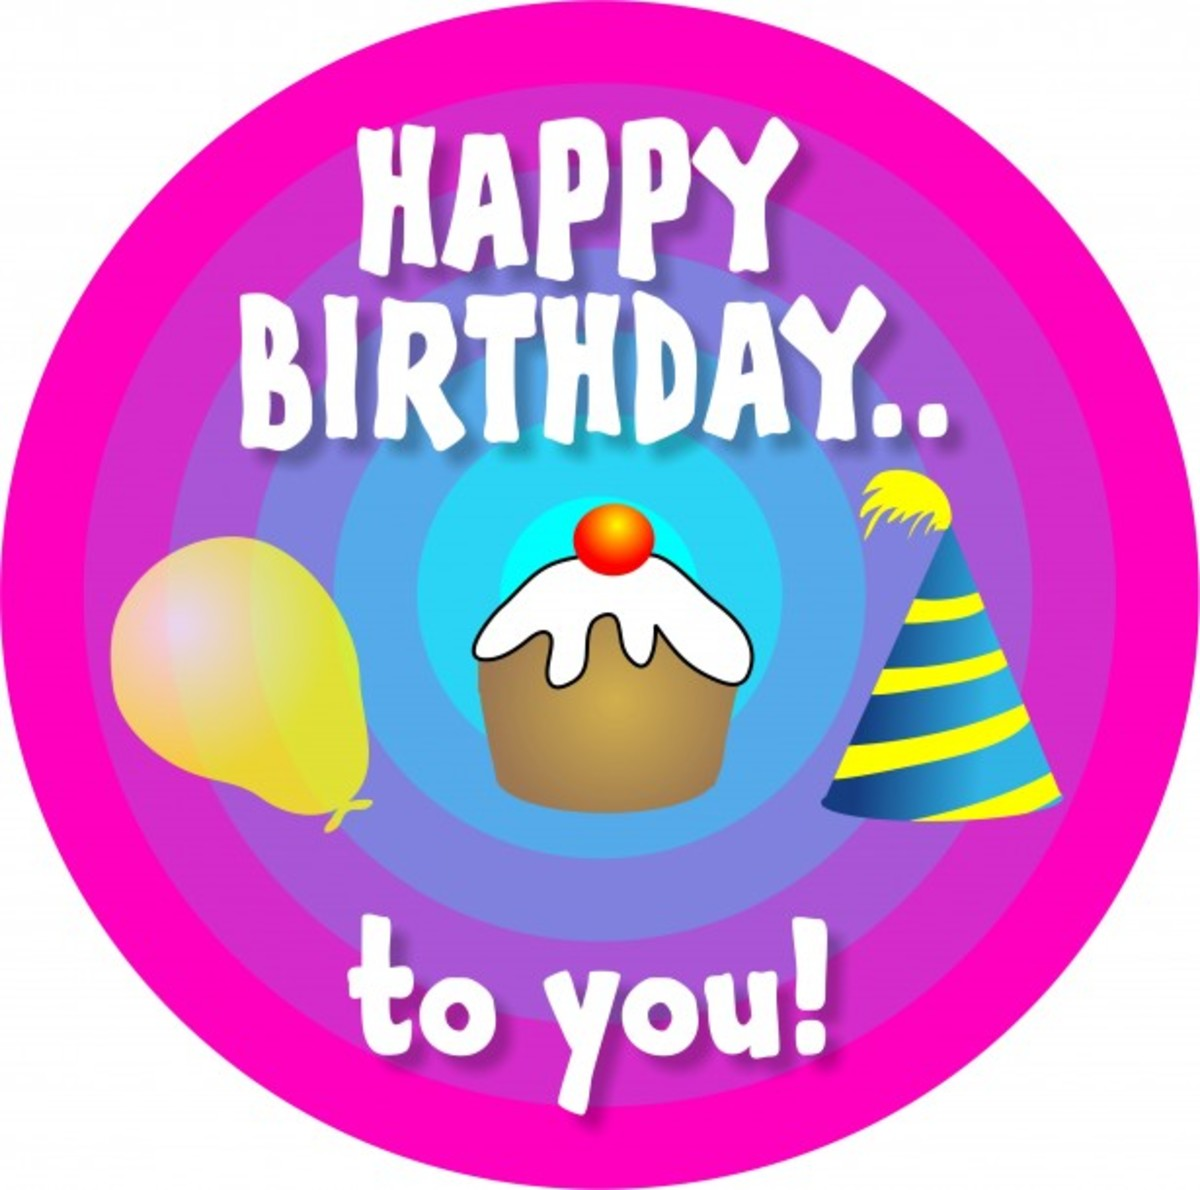 'Happy Birthday to You! with Balloon, Cupcake and Party Hat